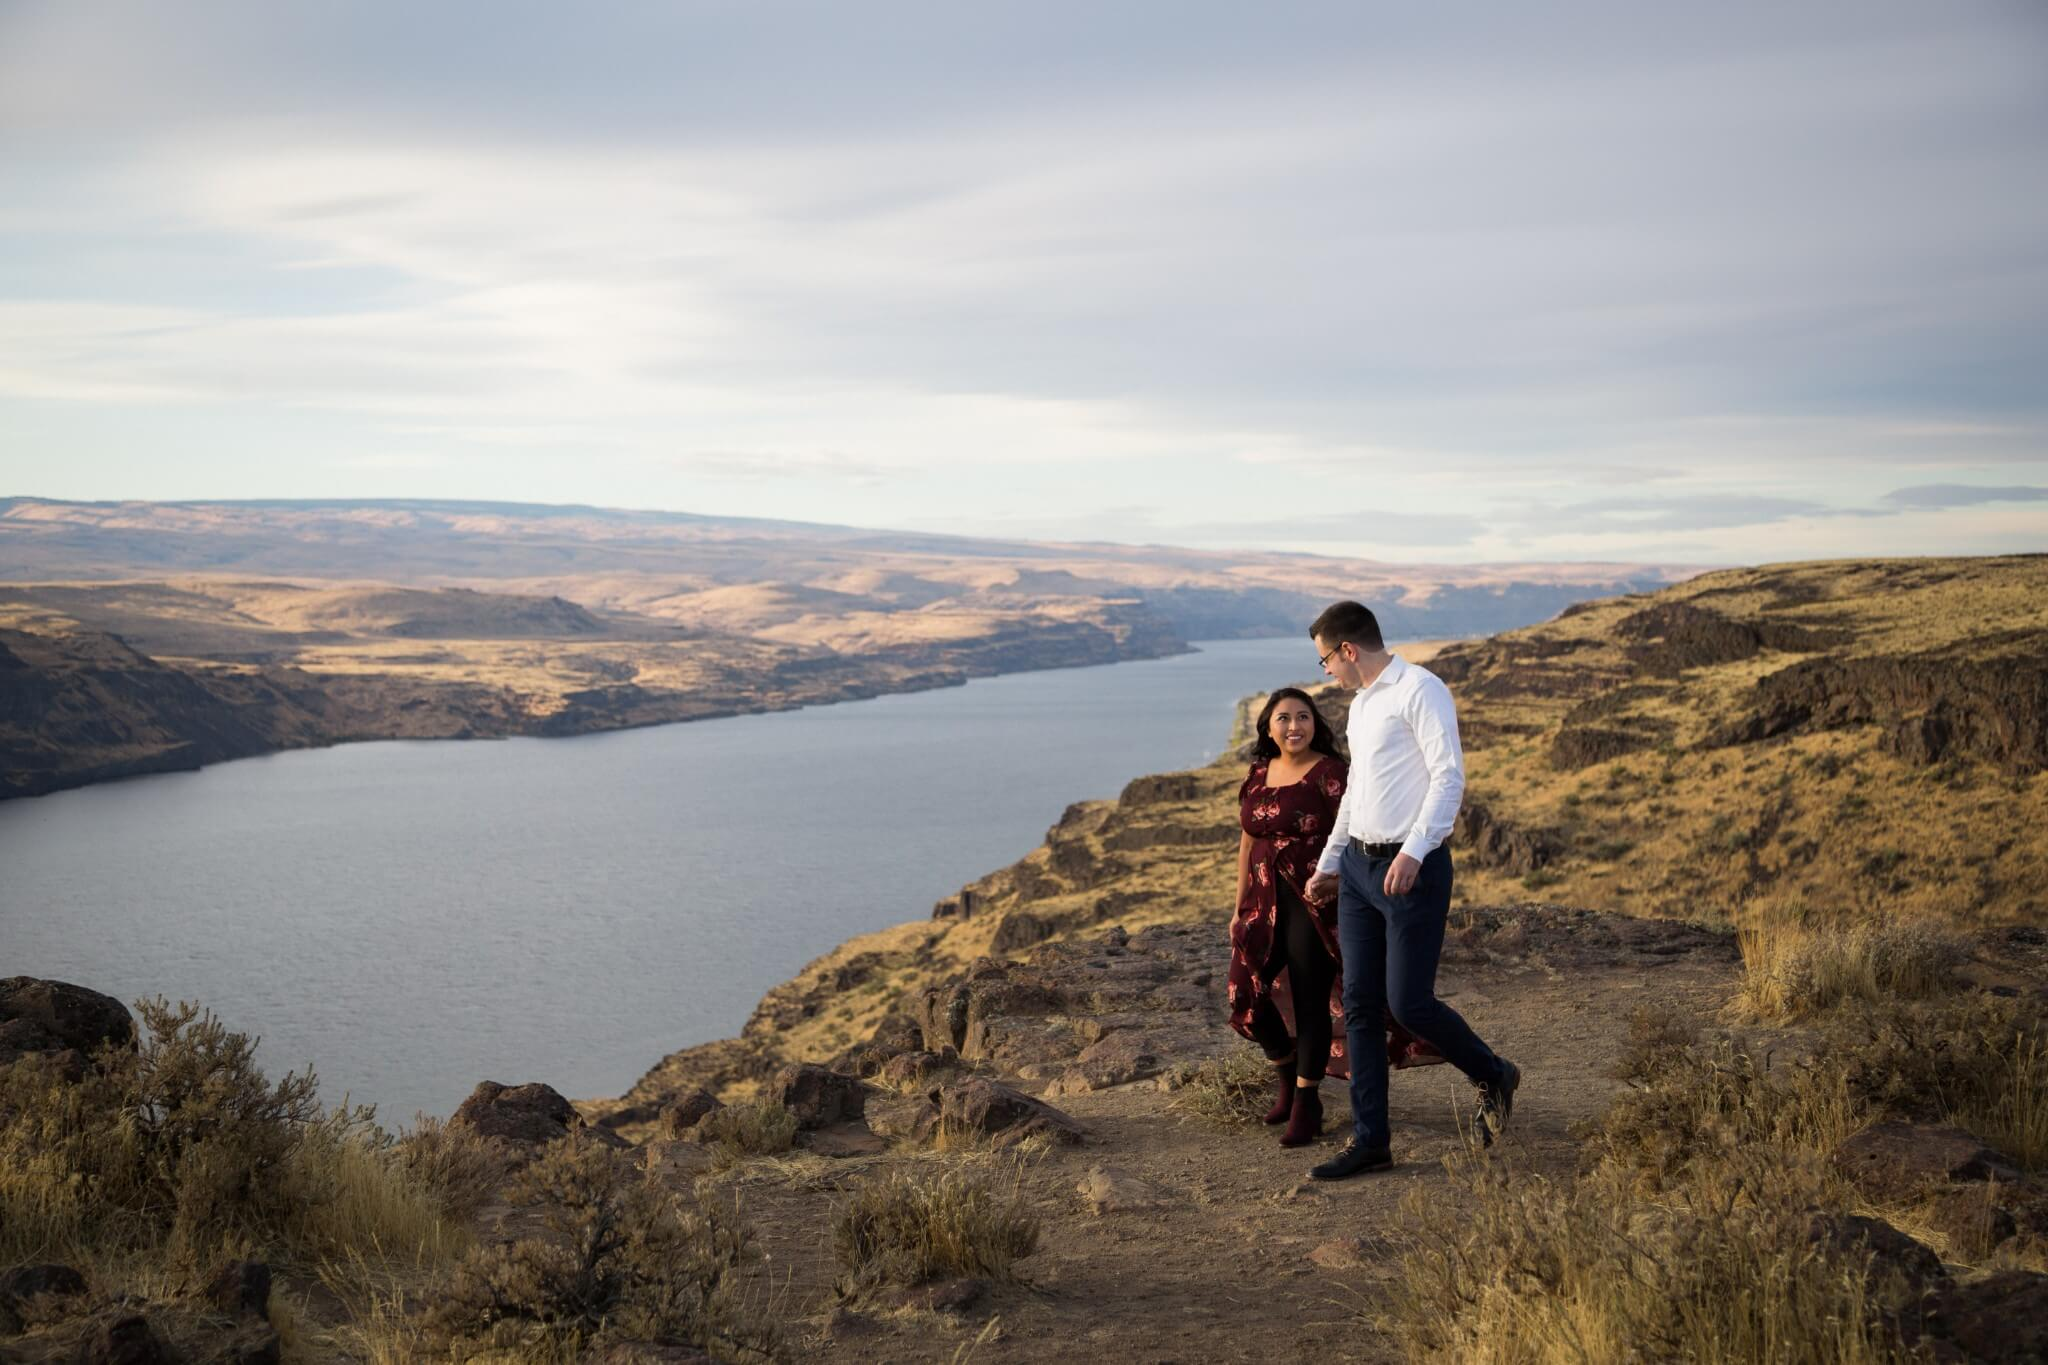 Lesly & Michael Vantage Engagement by Bill Weisgerber Spokane Photographer (20 of 71).jpg